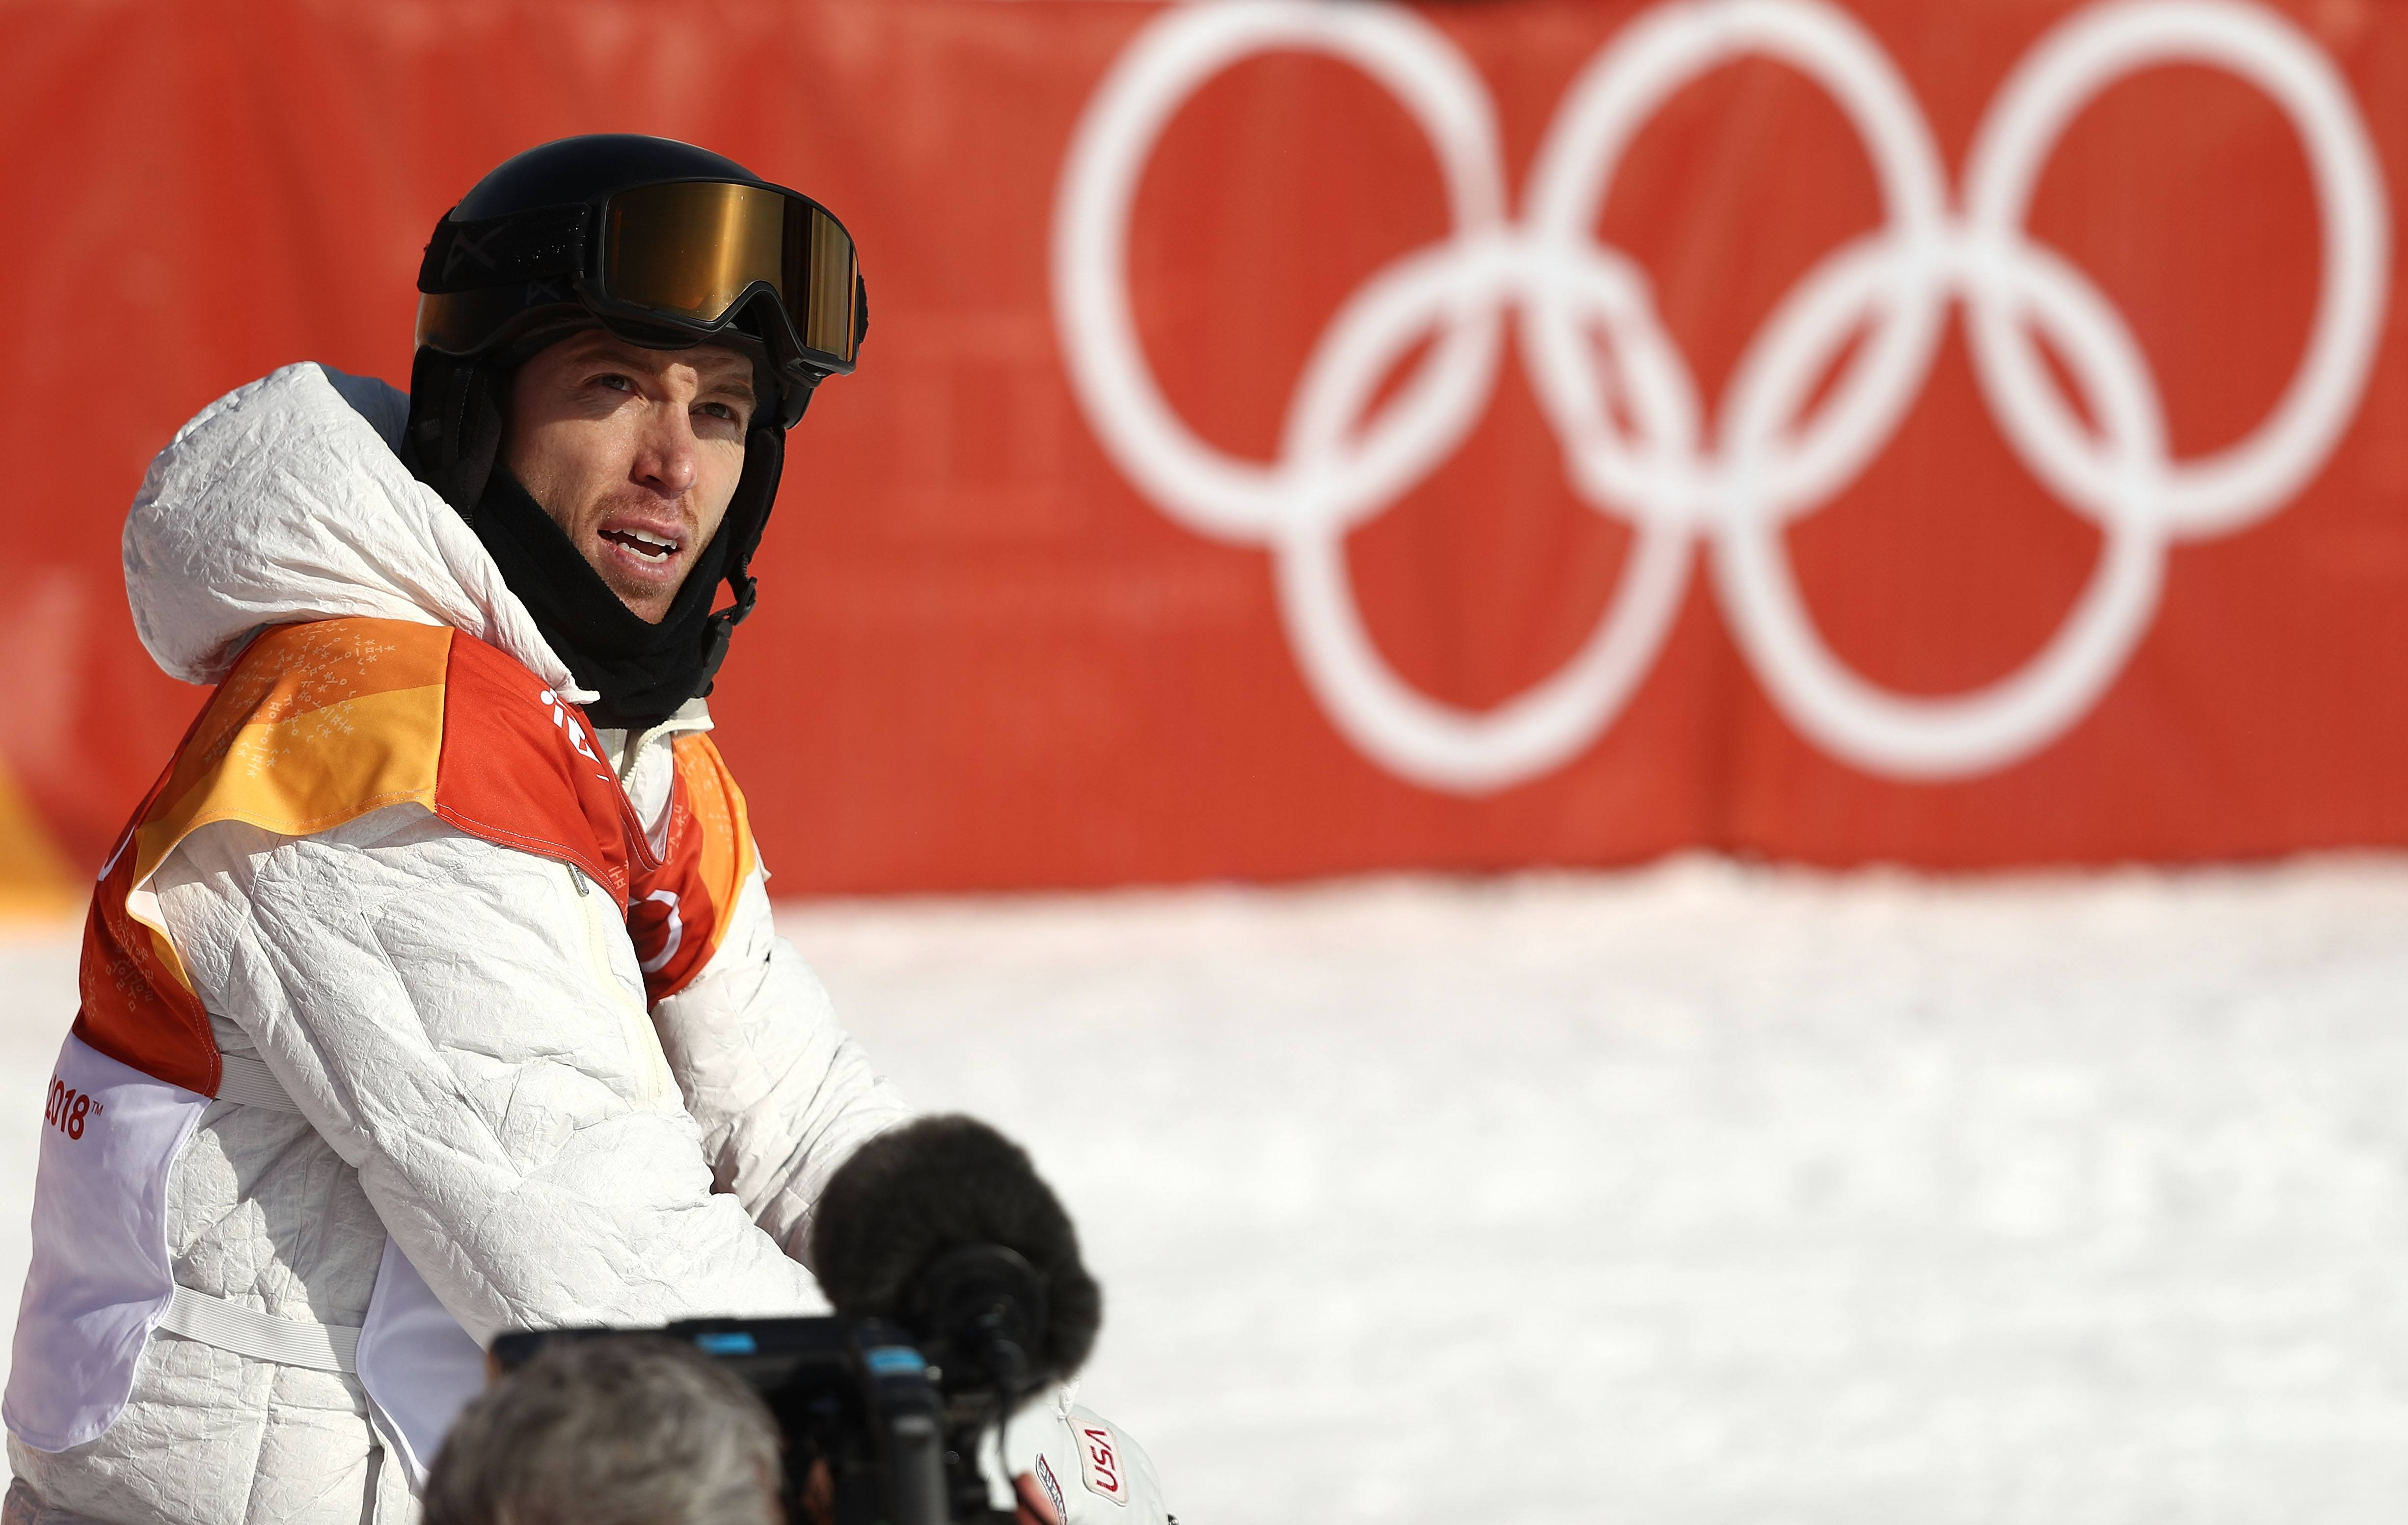 Shaun White of the United States reacts after his run during the Snowboard Men's Halfpipe Qualification on day four